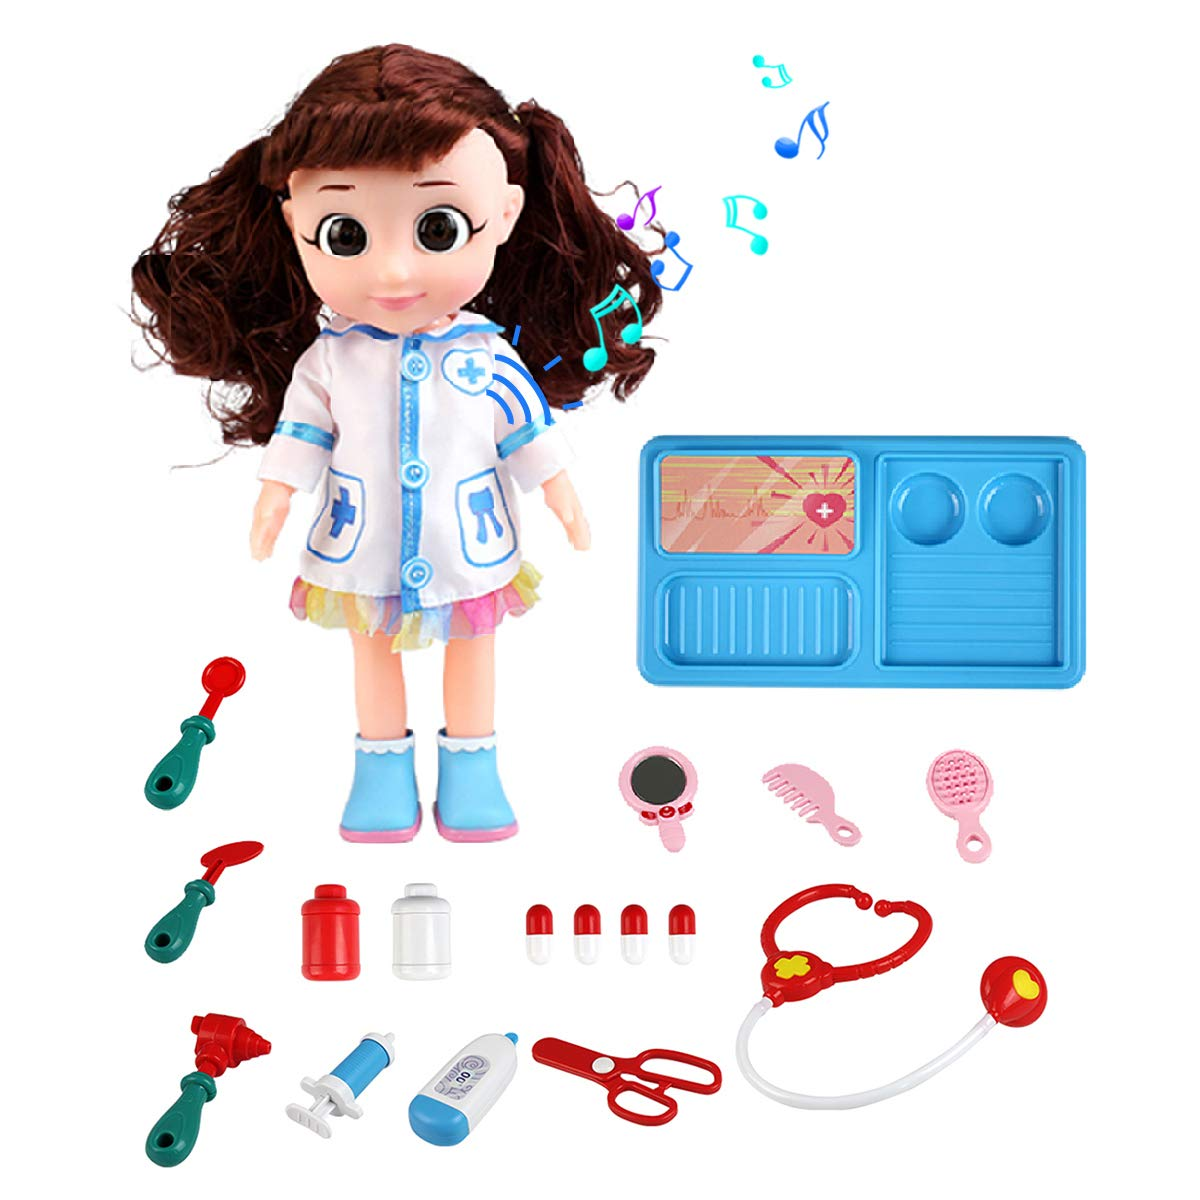 Pickwoo Kids Doctor Kit with Electronic Talking Doll Medical Supplies Playset Pretend Role Play Set 18 Pieces Nurse Instruments Interactive Toys Gift for Girls Boys Toddlers